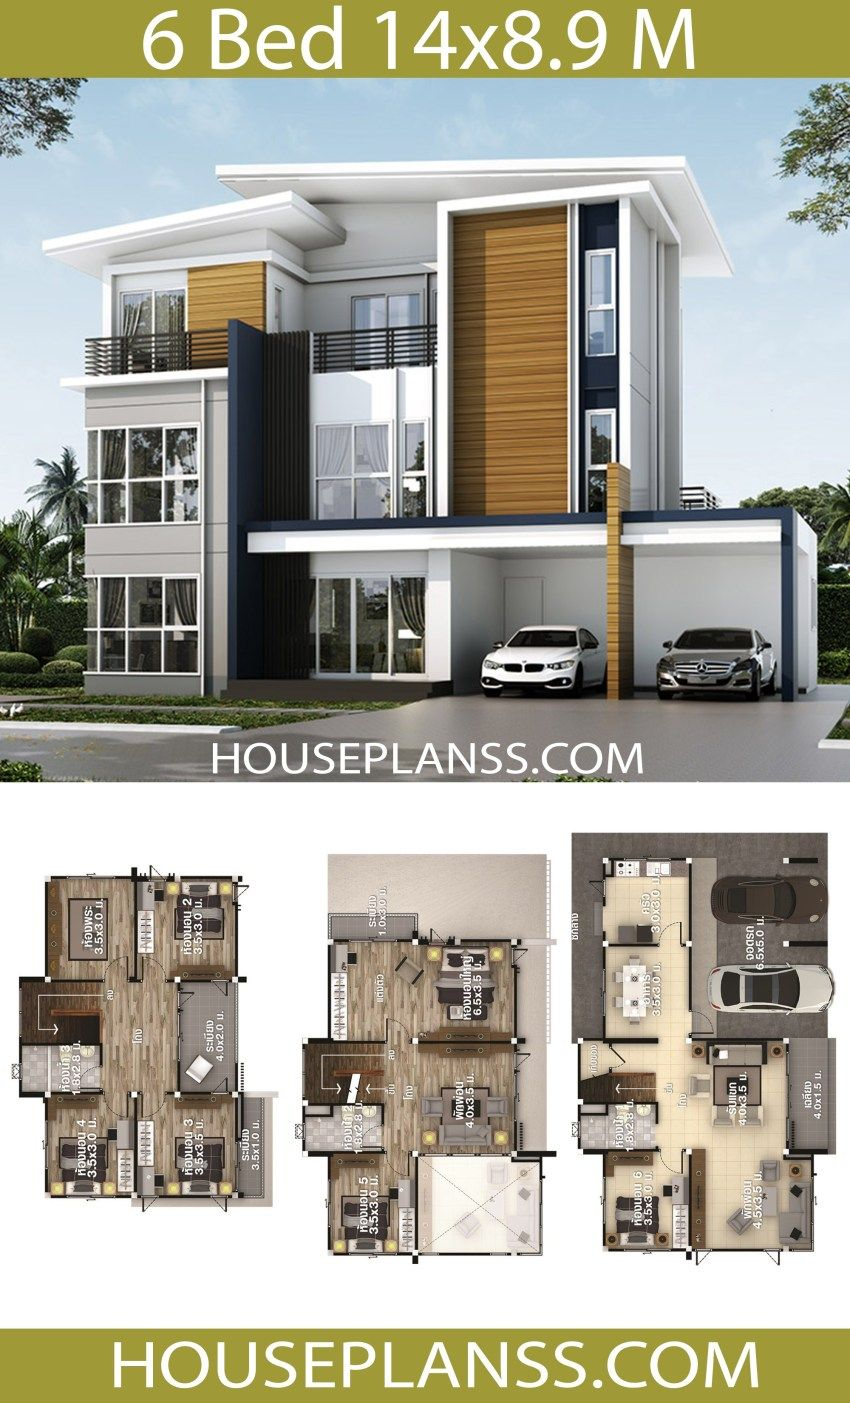 House Plans Idea 14x8 9 With 6 Bedrooms House Plans 3d 6 Bedroom House Plans Duplex House Design Dream House Plans